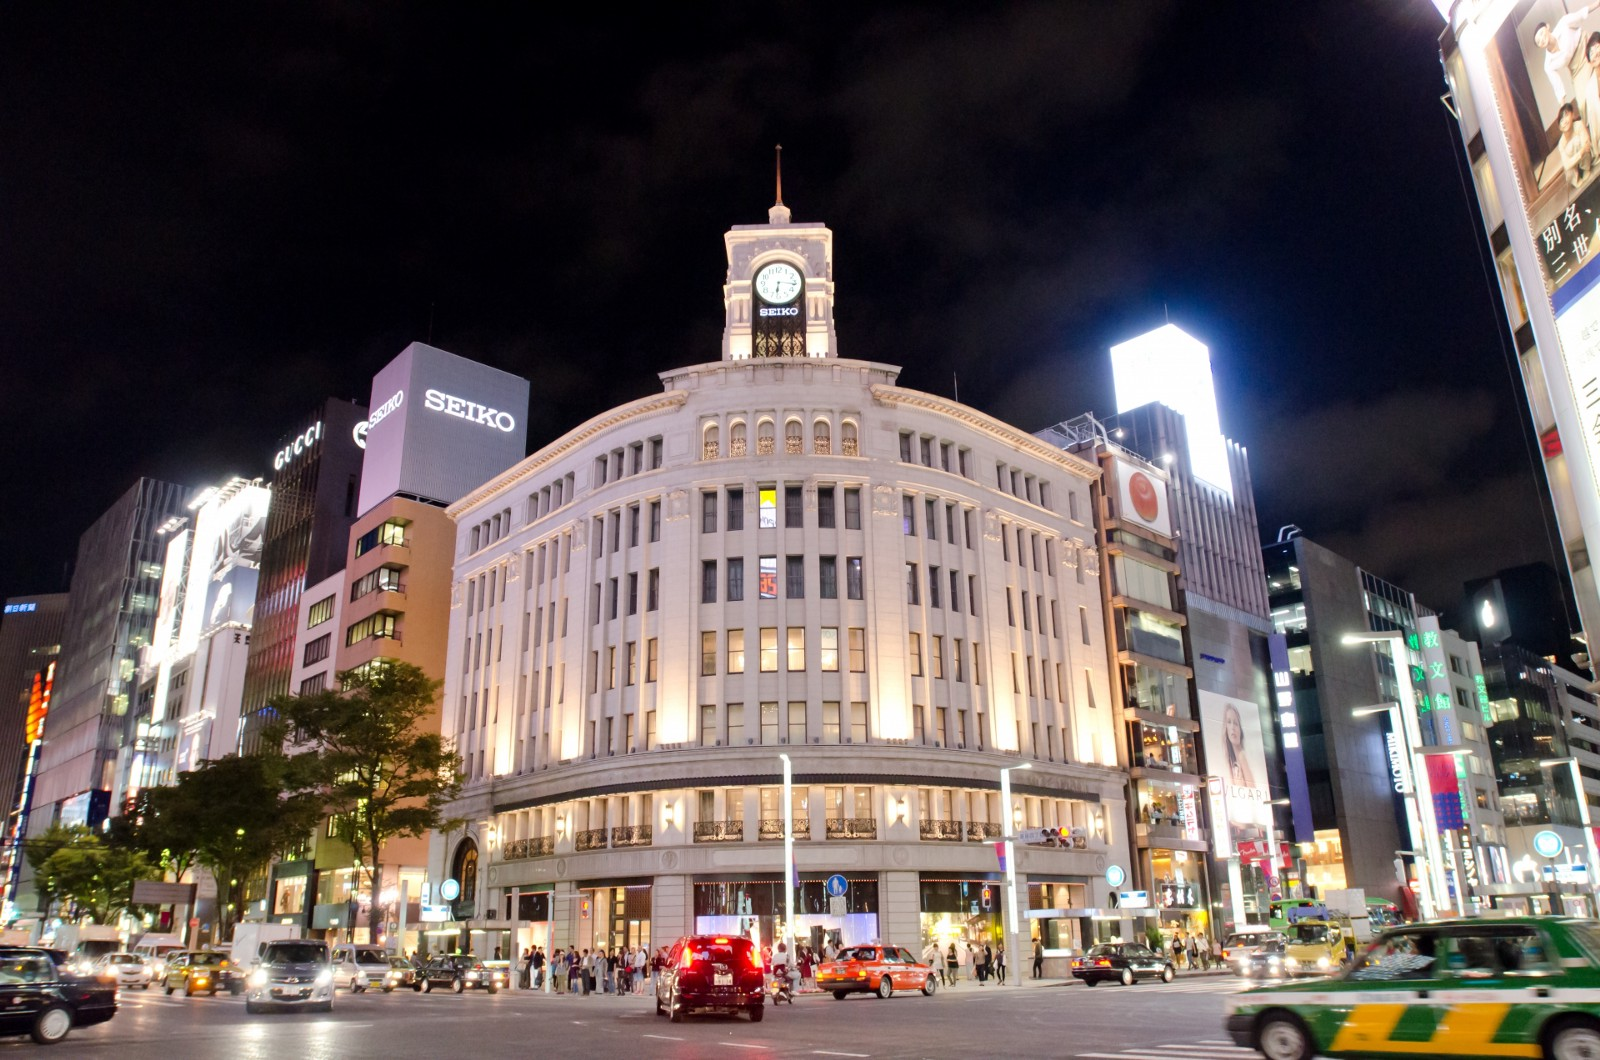 Ginza Wako: The iconic building in Ginza